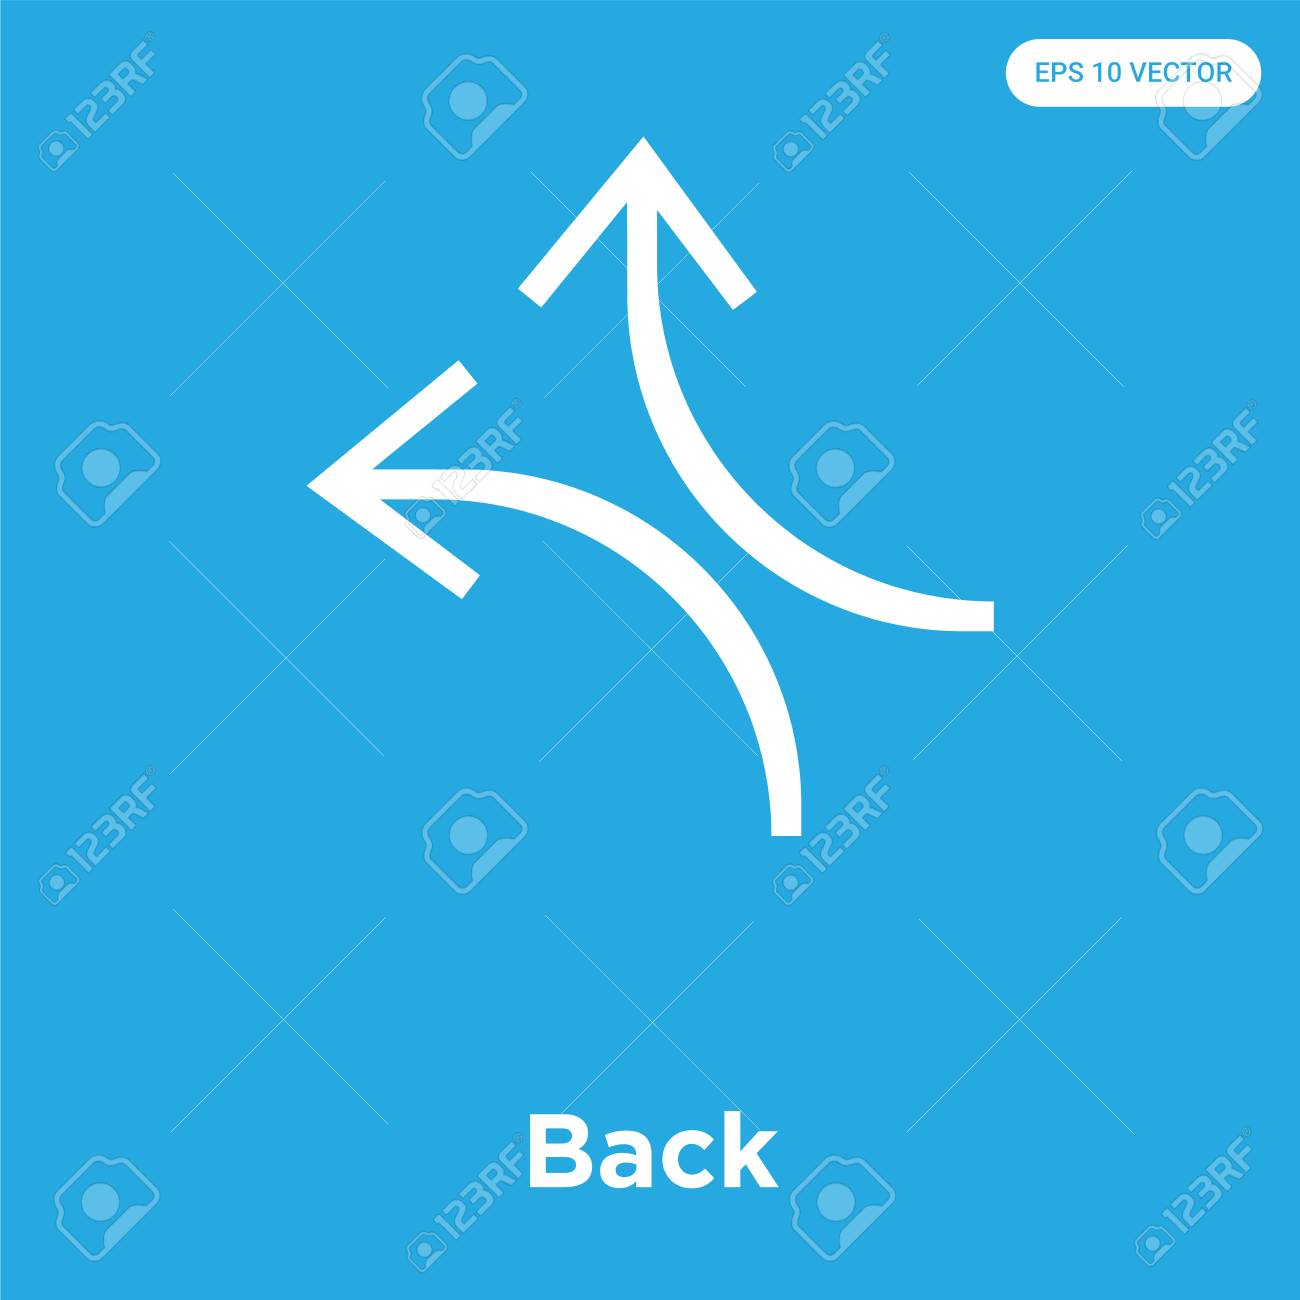 Back vector icon isolated on blue background, sign and symbol, Back icons collection - 114806122